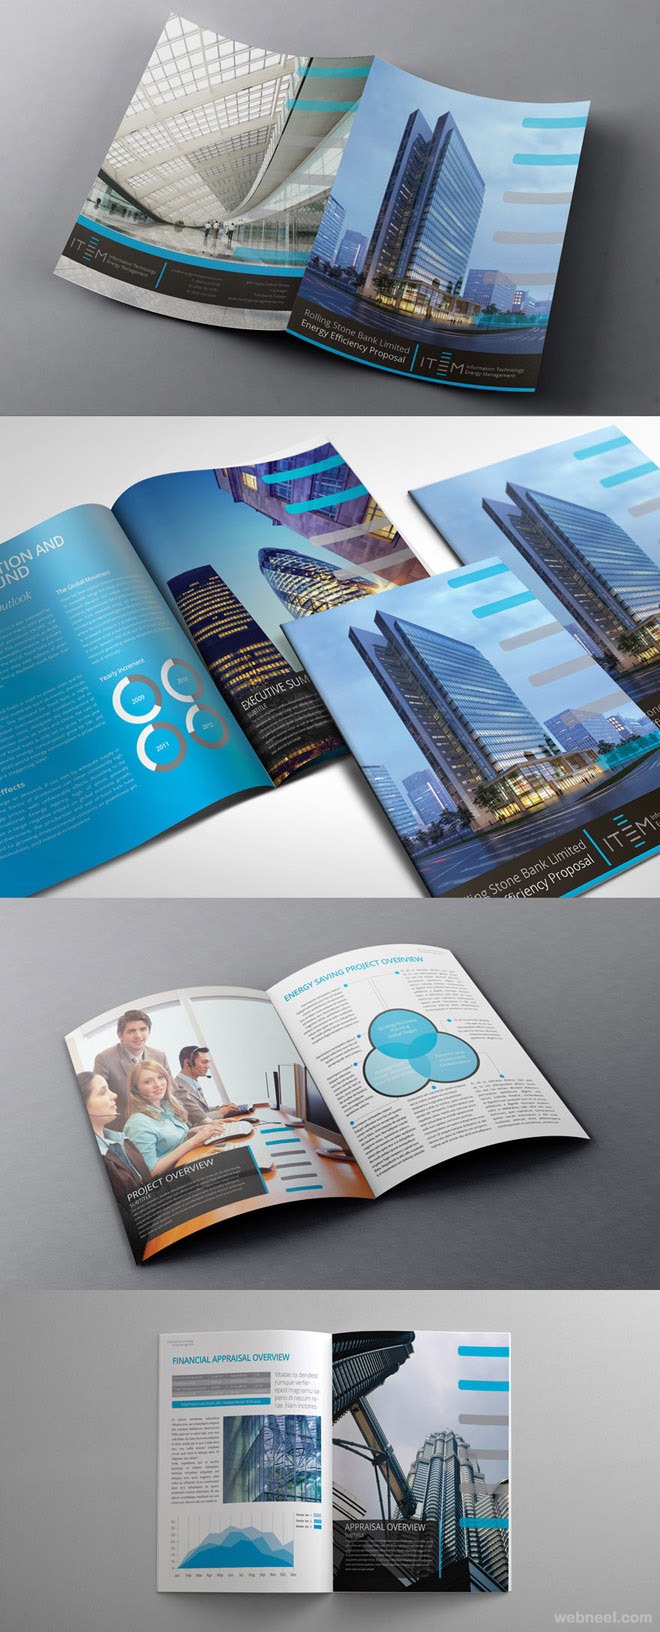 19 - Booklet Design Ideas